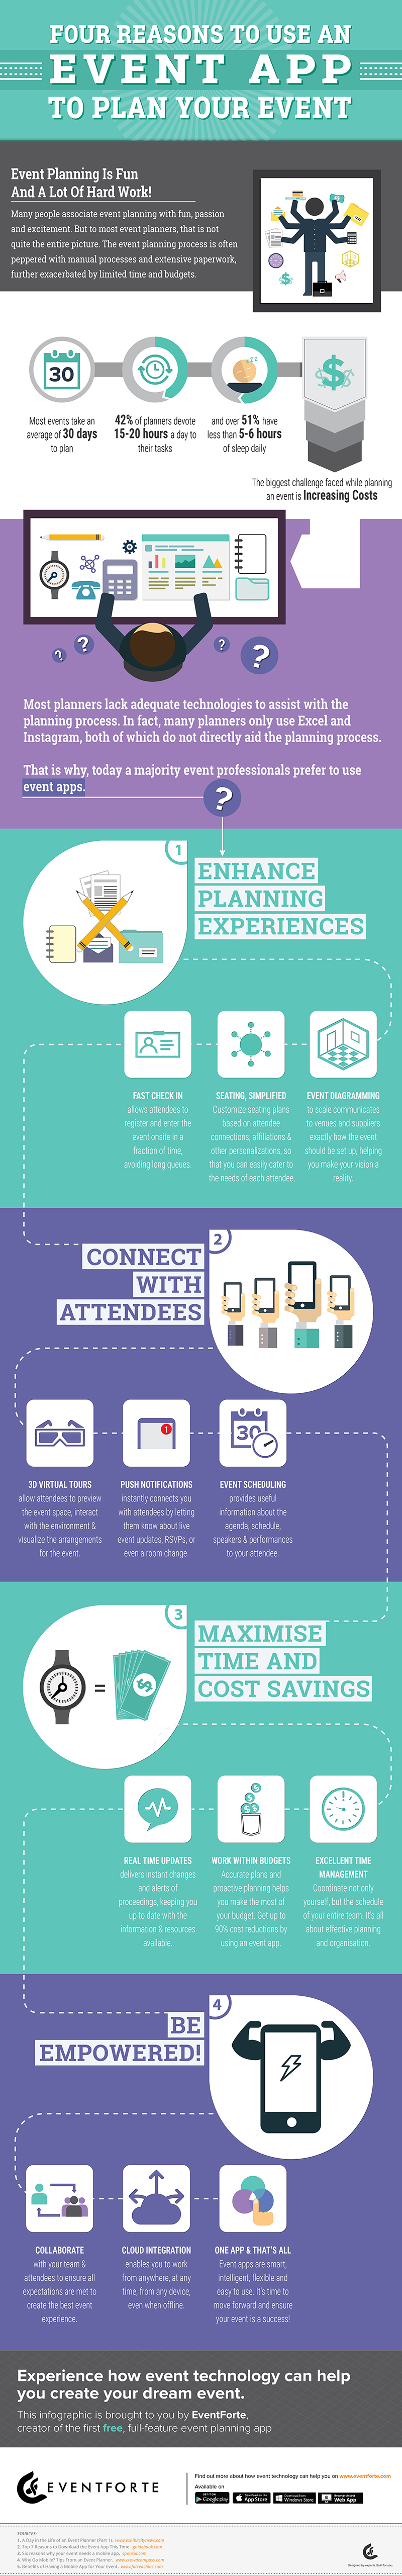 Four Reasons to Use An Event App And Check In App To Plan Your Event